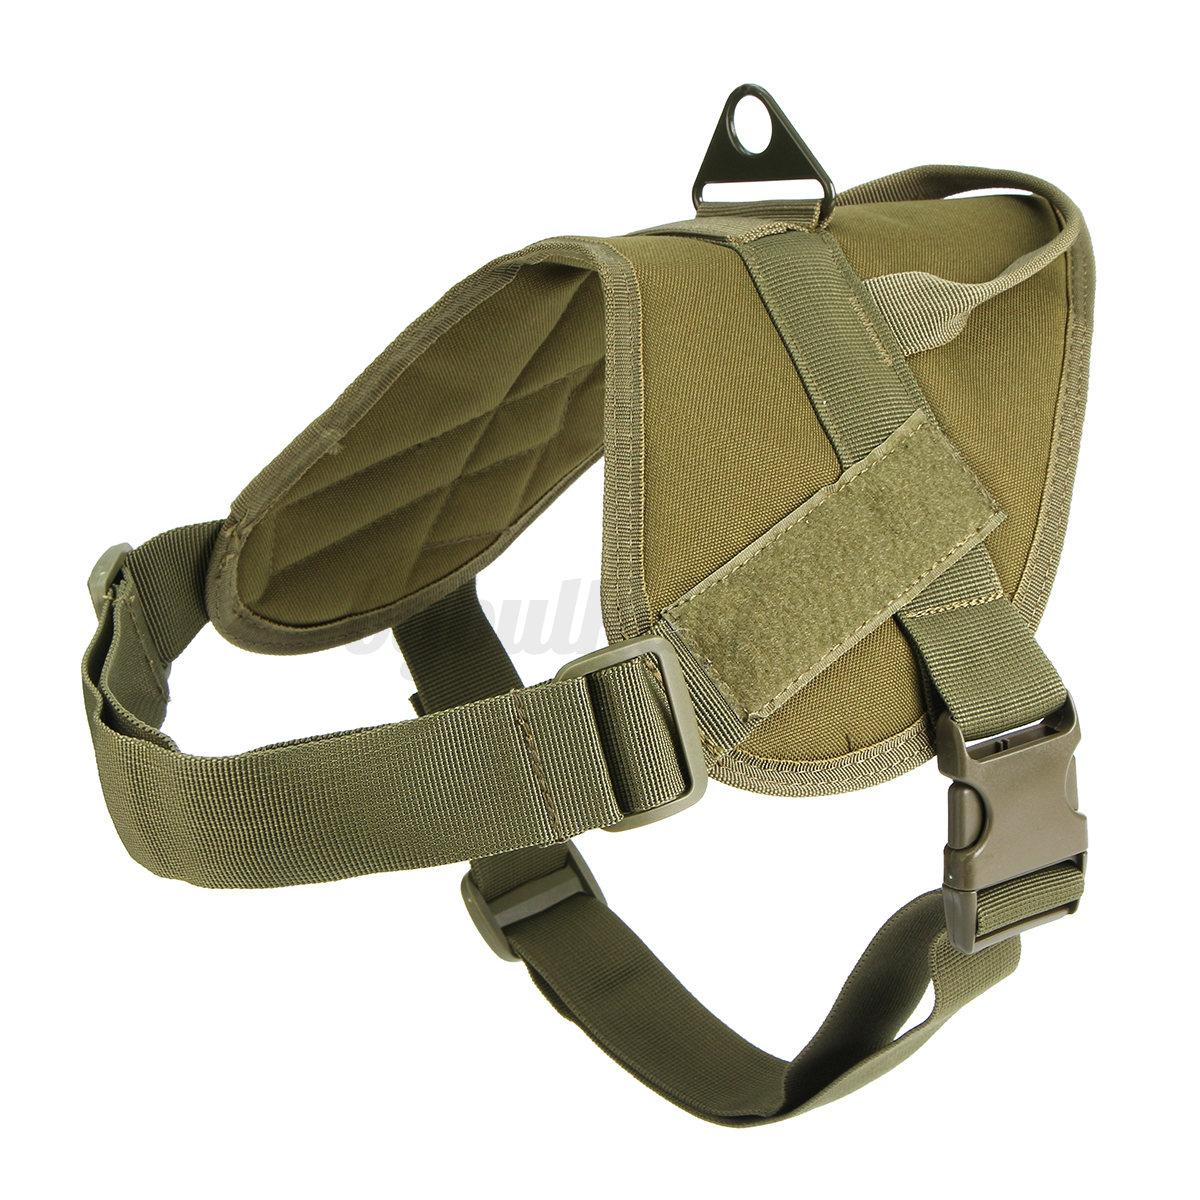 K9-TACTICAL-ARNES-HARNESS-FORMACION-PERROS-70-95CM-ROPA-IMPERMEABLE-1000D-NAILON